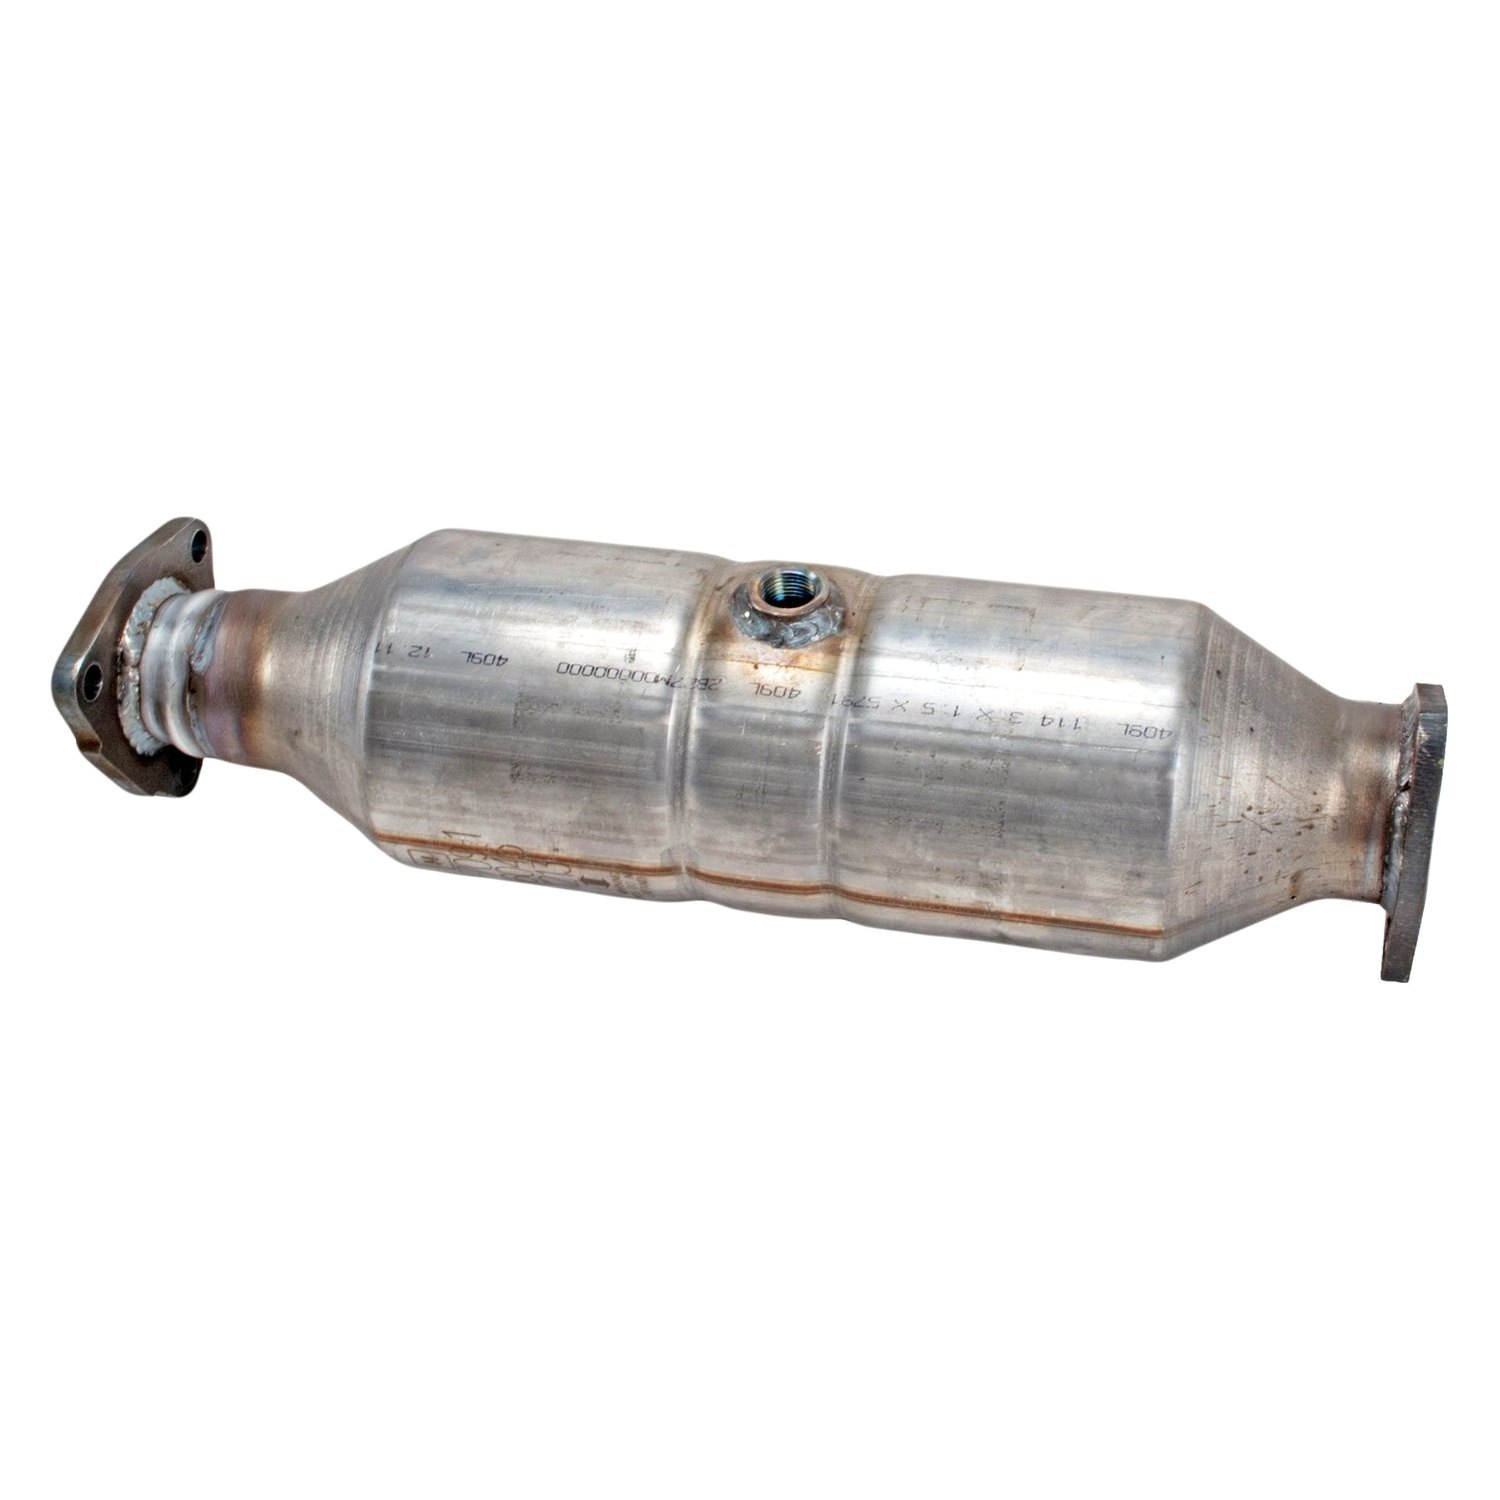 Acura MDX 2001 Direct Fit Catalytic Converter